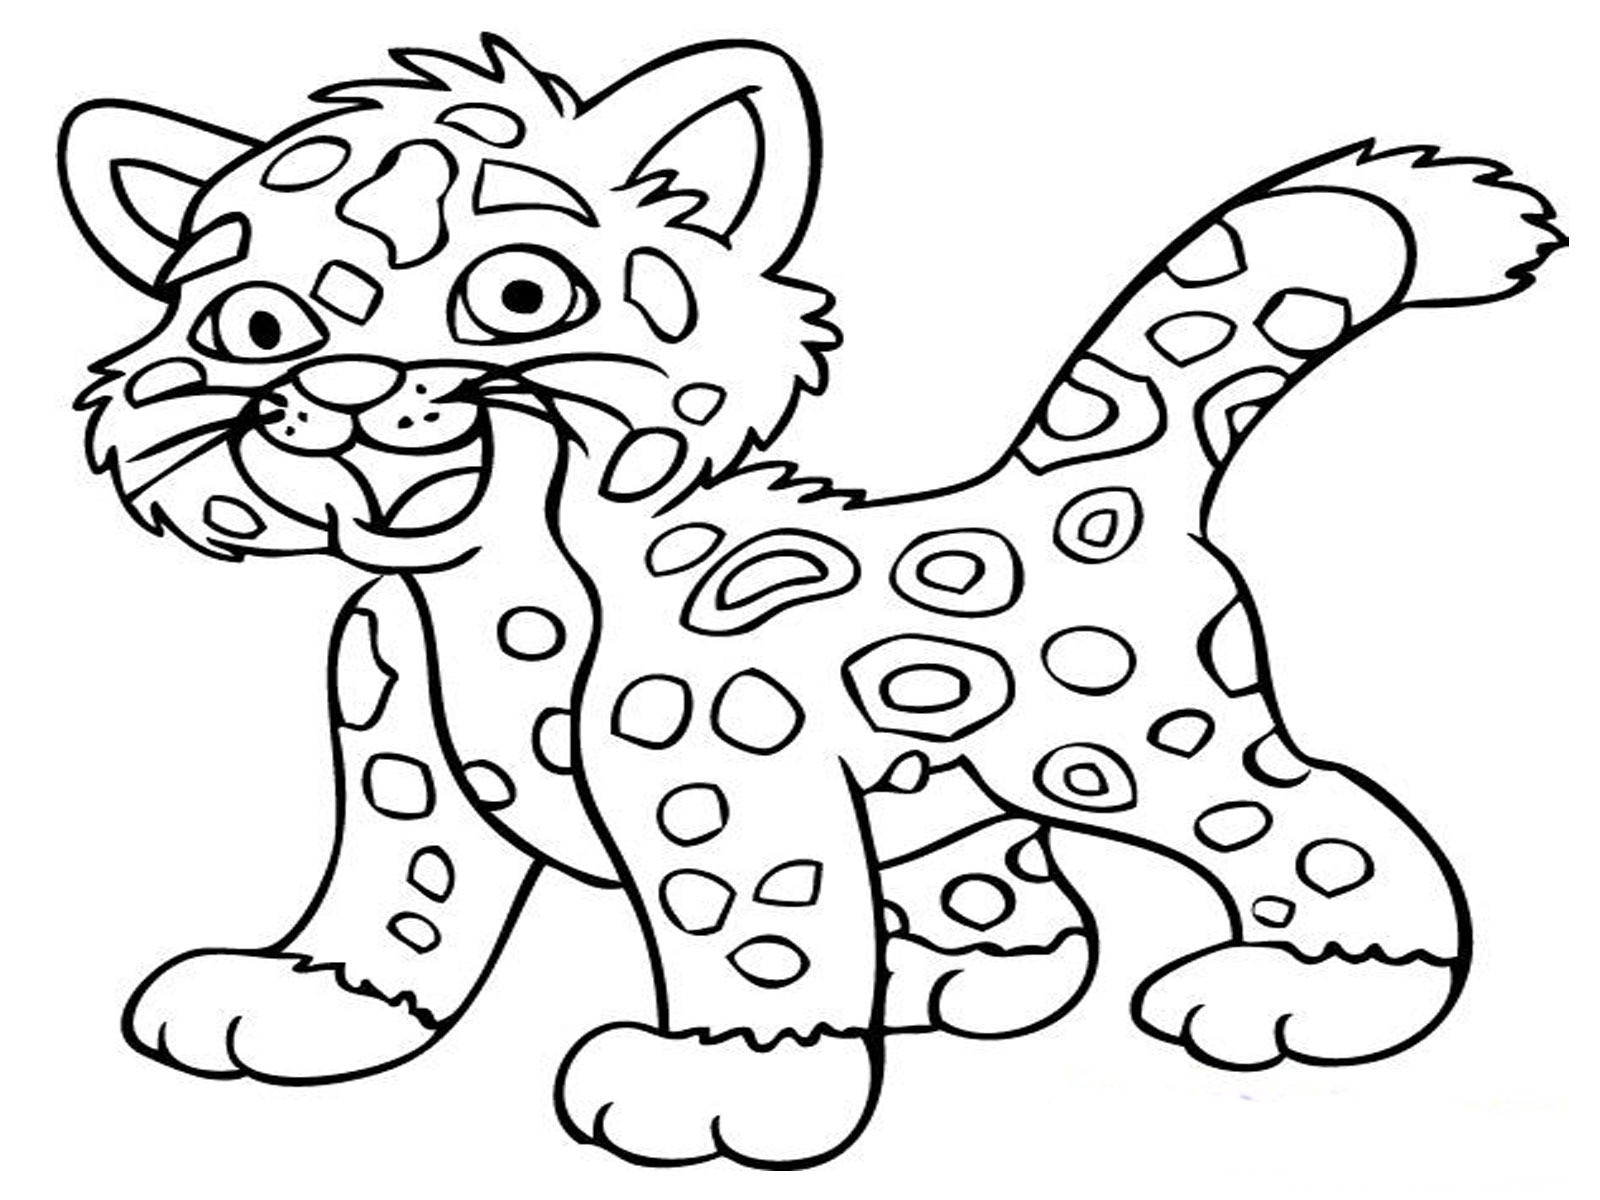 Best ideas about Free Printable Coloring Pages Animals . Save or Pin Animal Coloring Pages 9 Now.